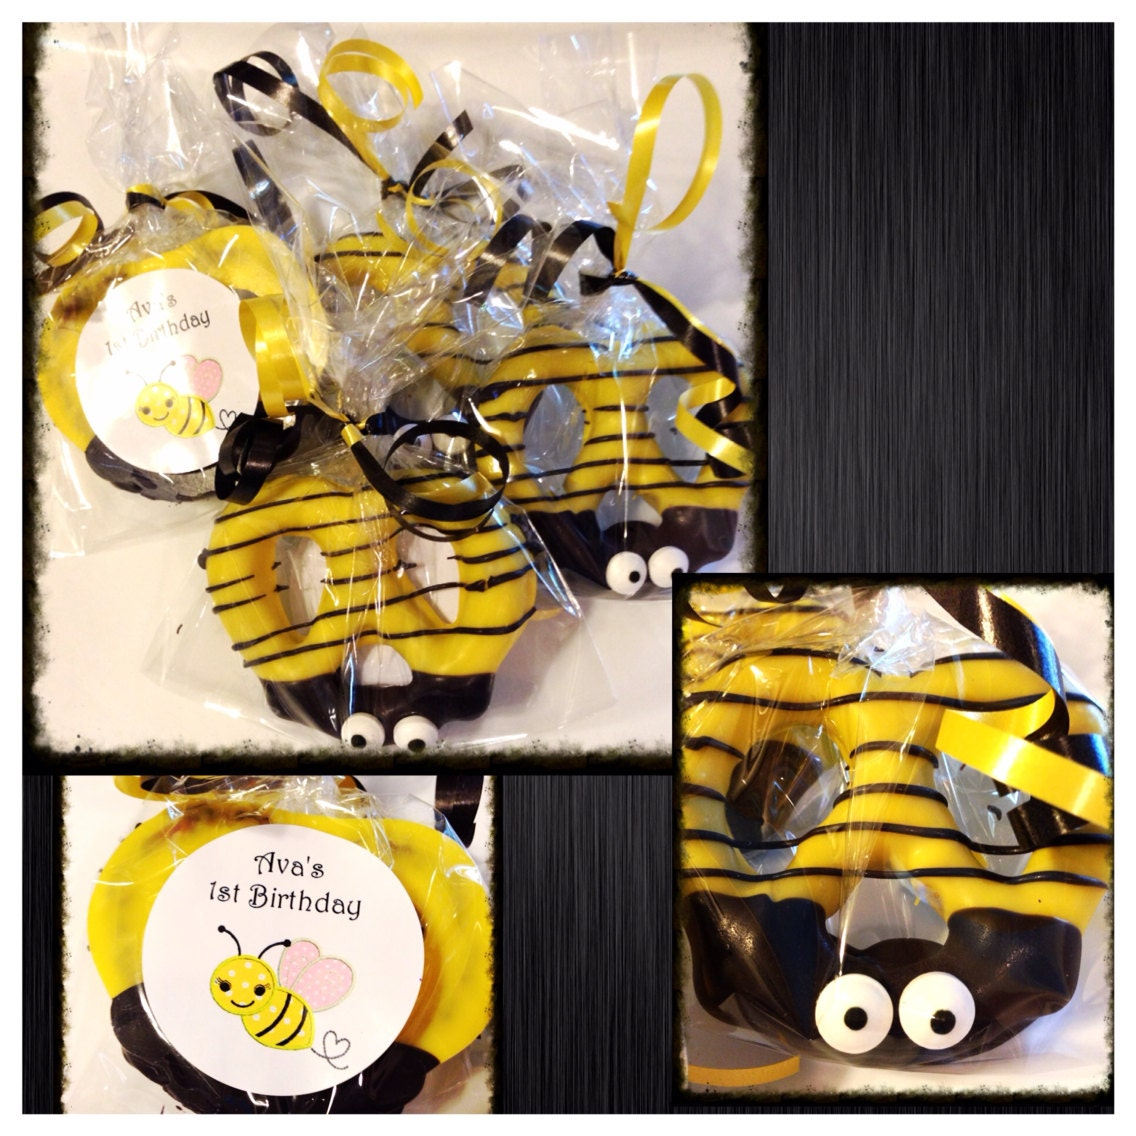 Bee Party Bumble Chocolate Covered Pretzels